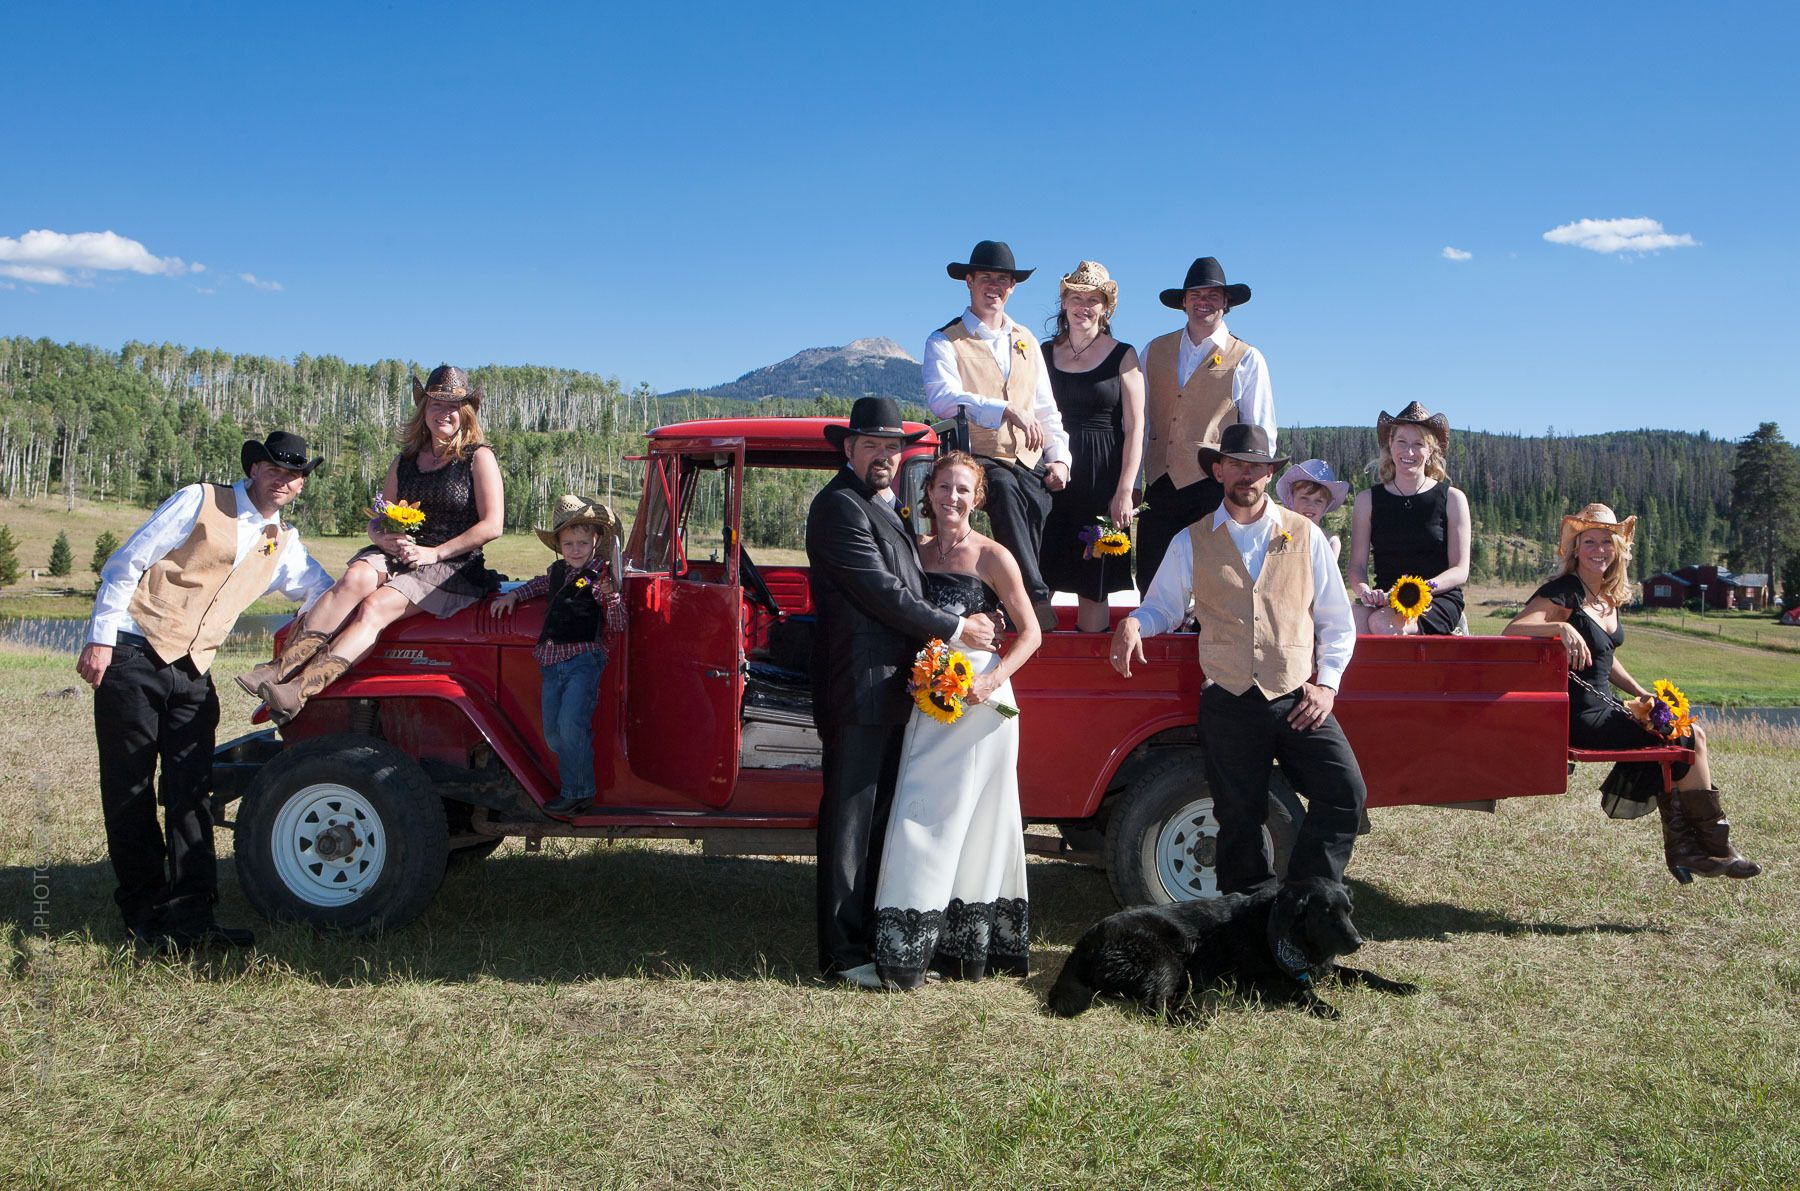 1alex_kendall_photography__breckenridge_colorado__dog_photography__pet_photography__wedding_photography__family_portraits__sports_photography__senior_portraits__family_reunion_photographer_378